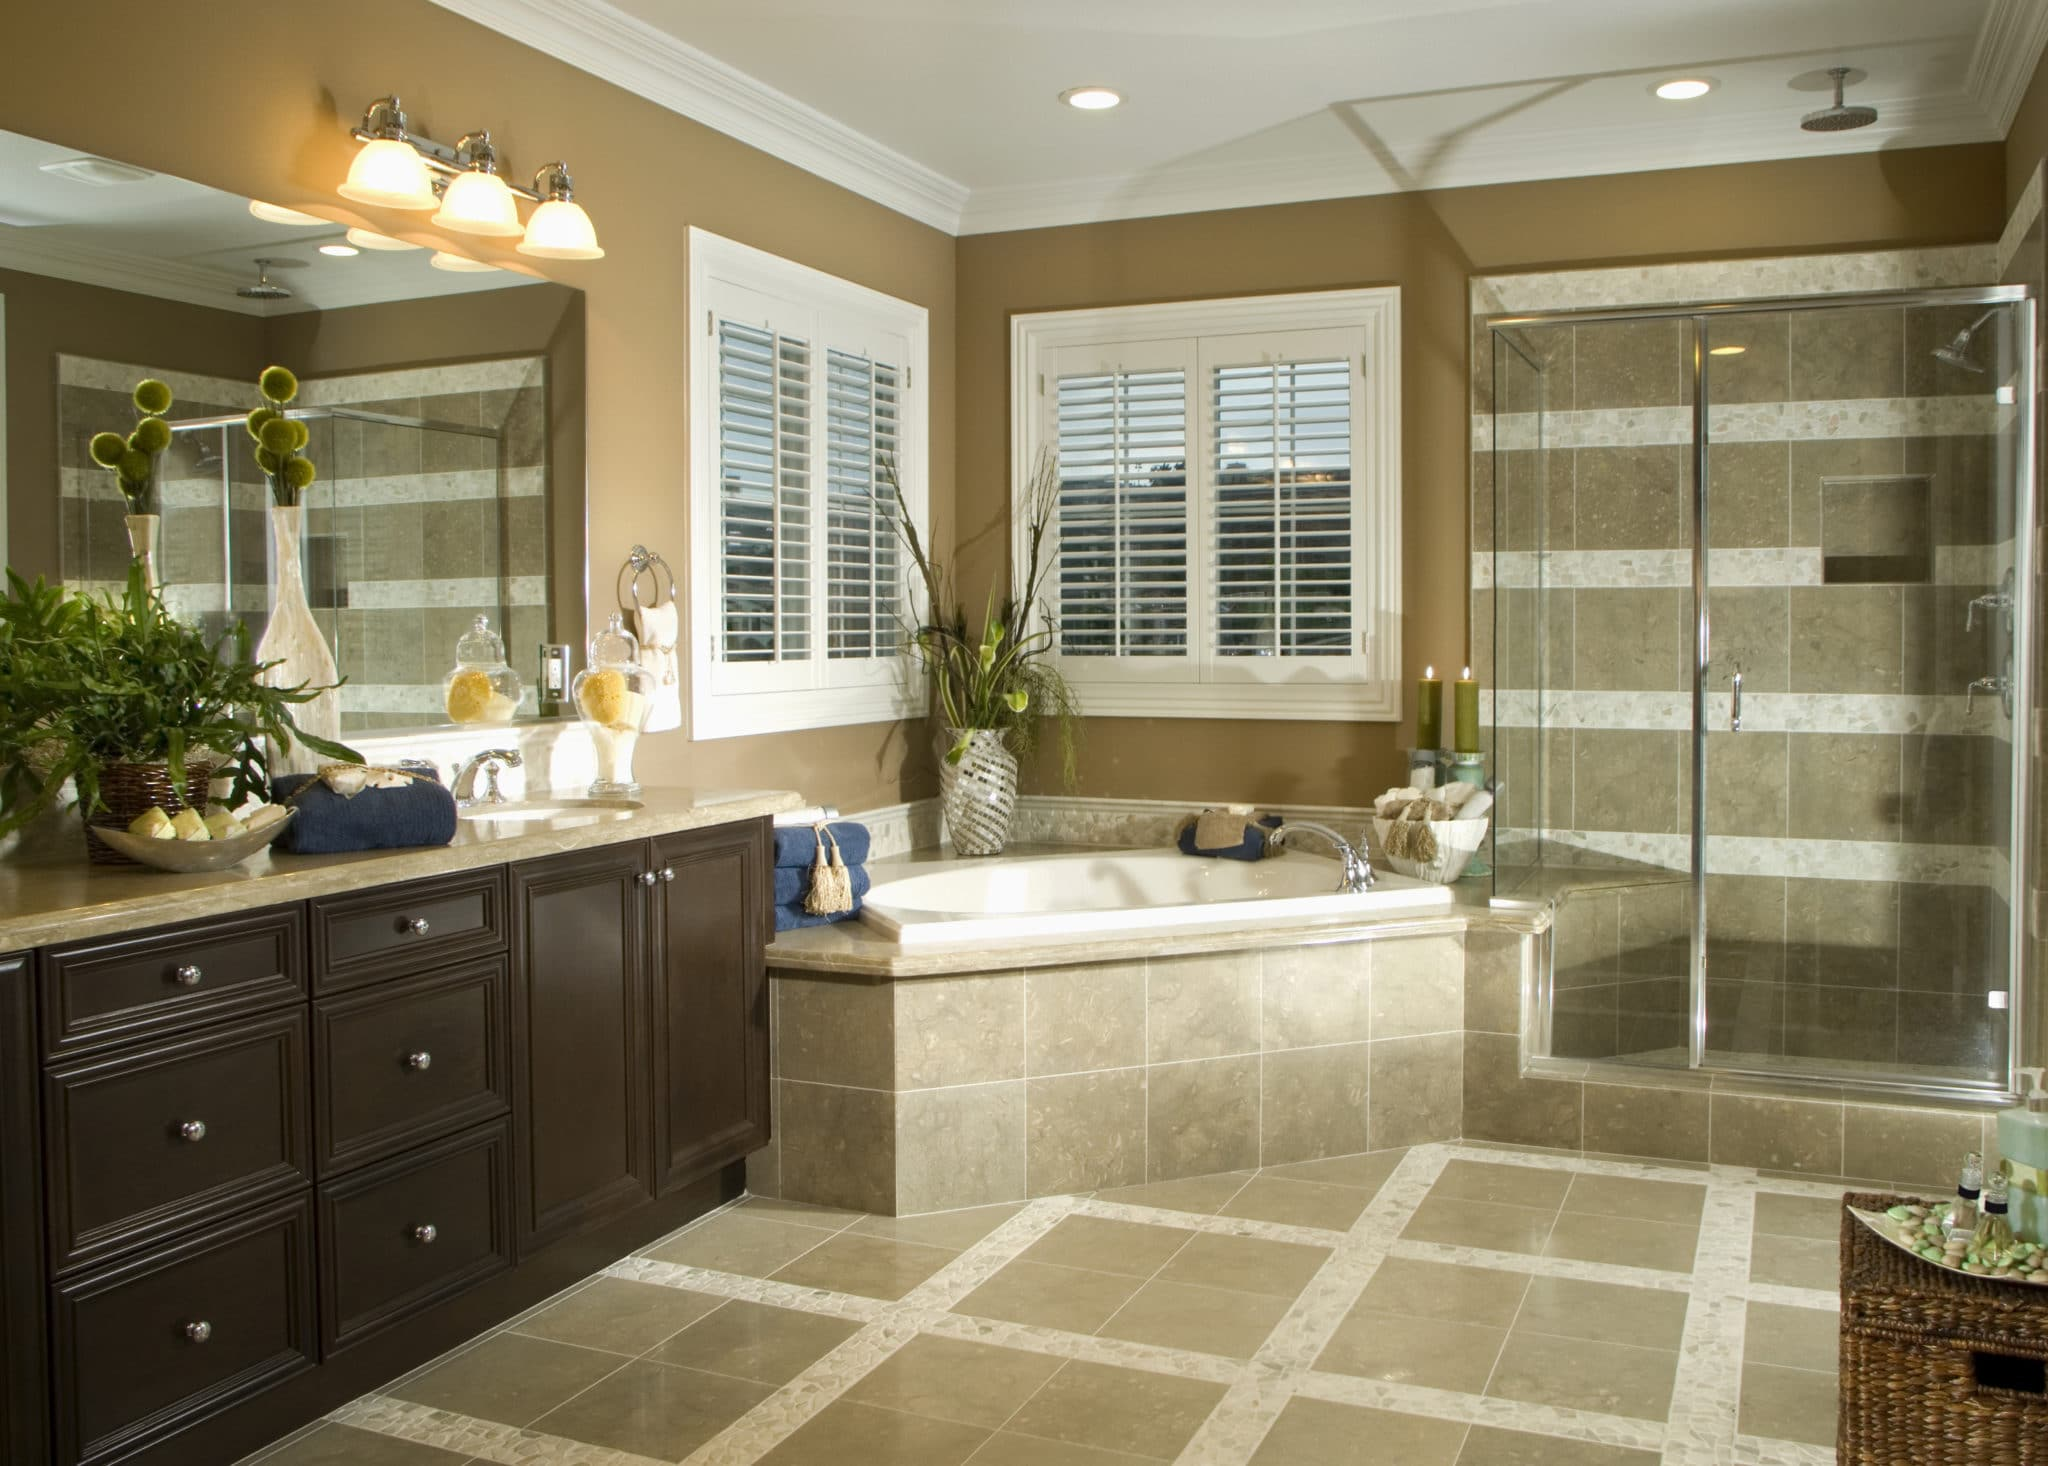 Bathroom Remodeling Morris County Nj Bathroom Remodel Design